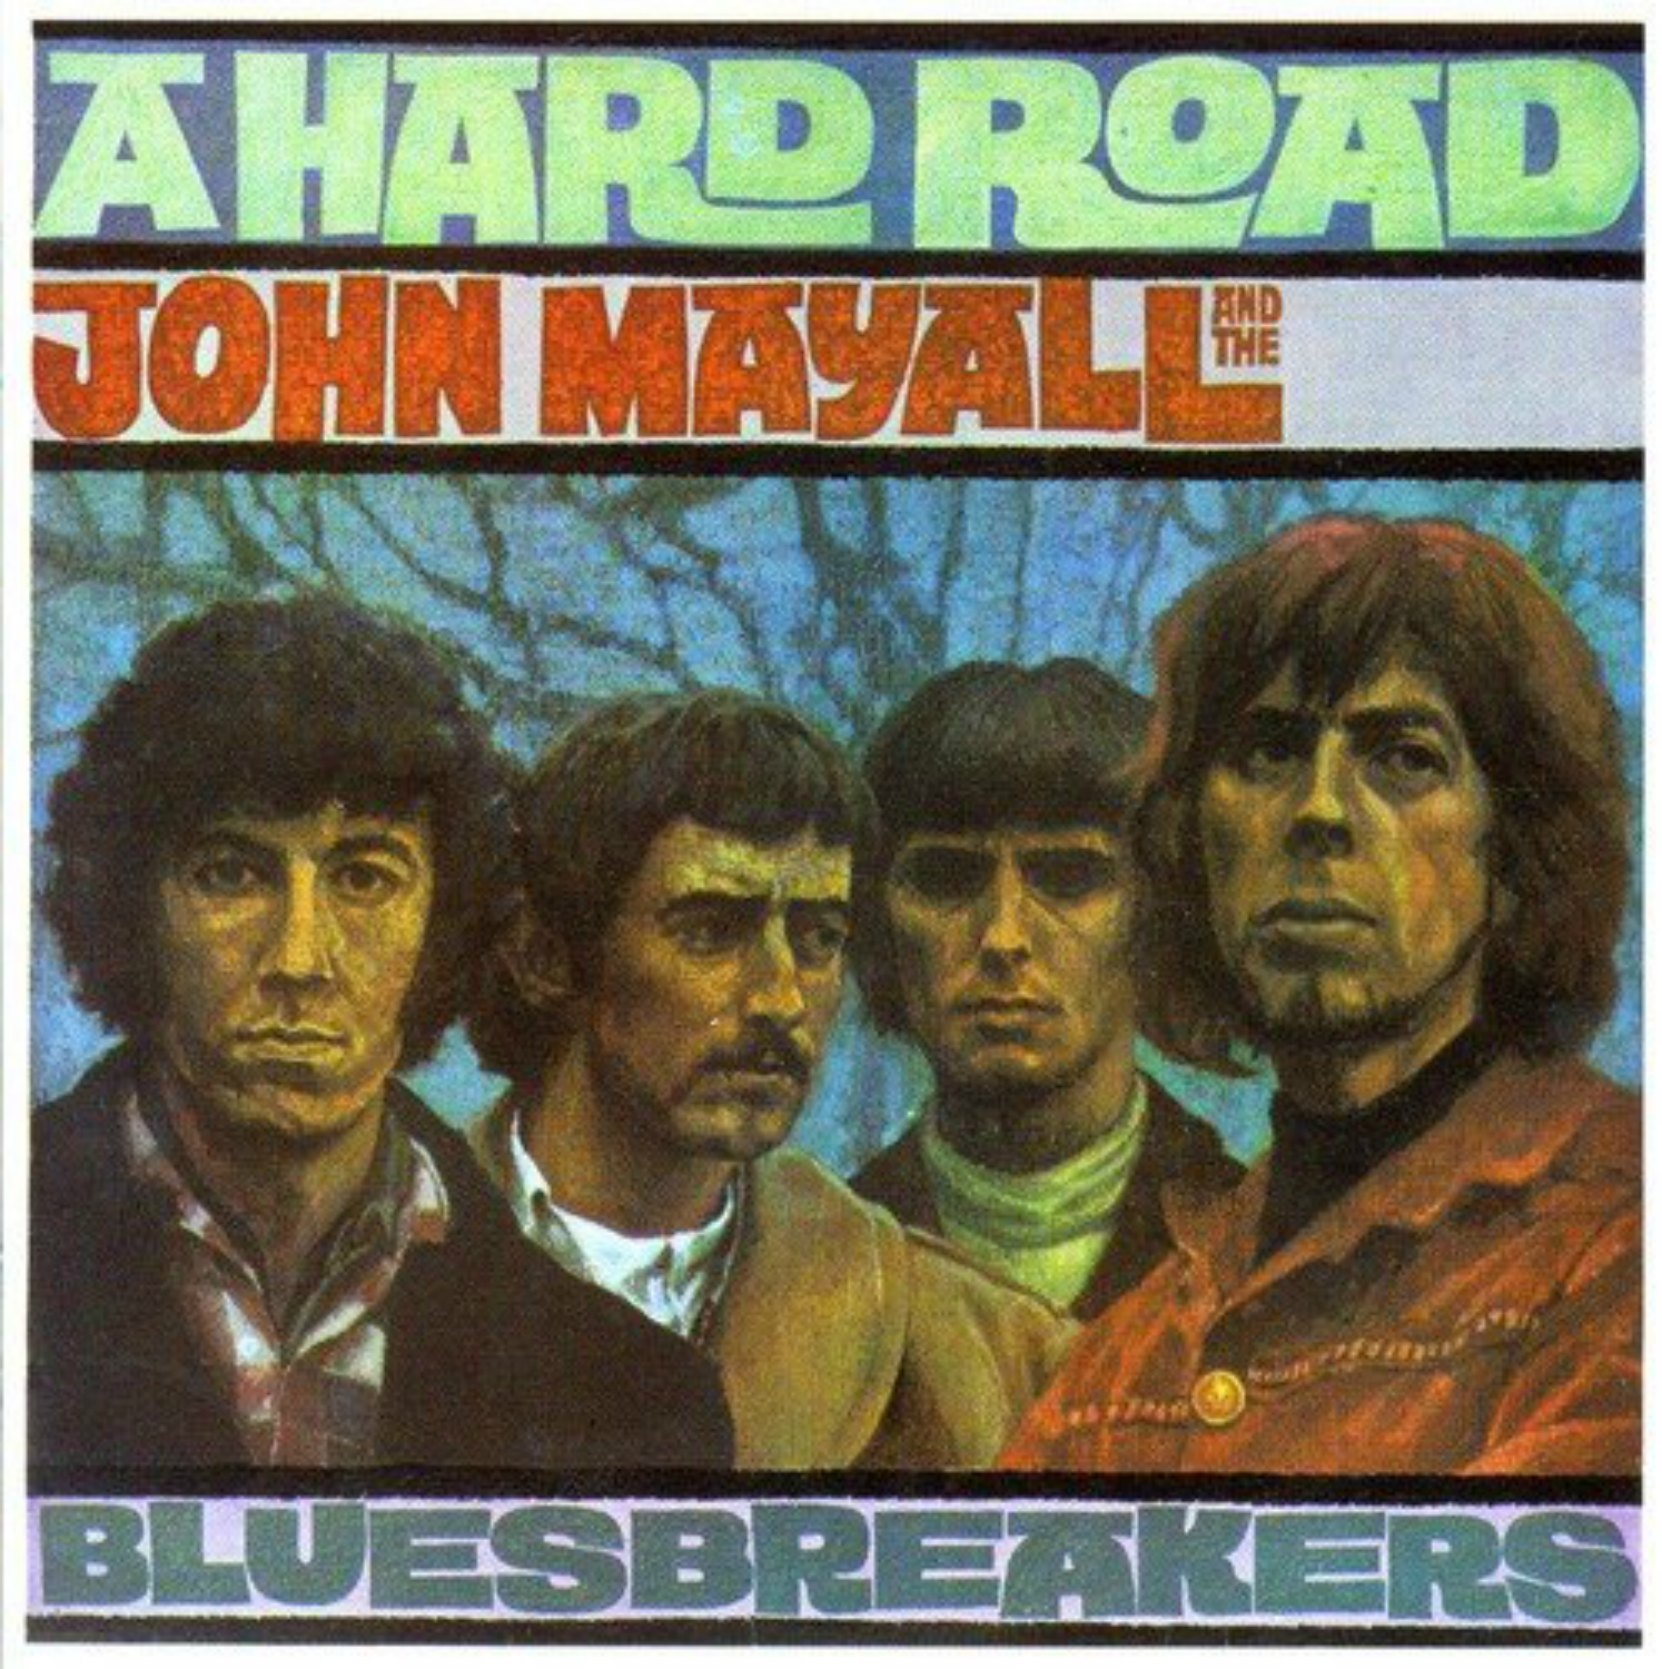 CD cover, A Hard Road by John Mayall and the Bluesbreakers